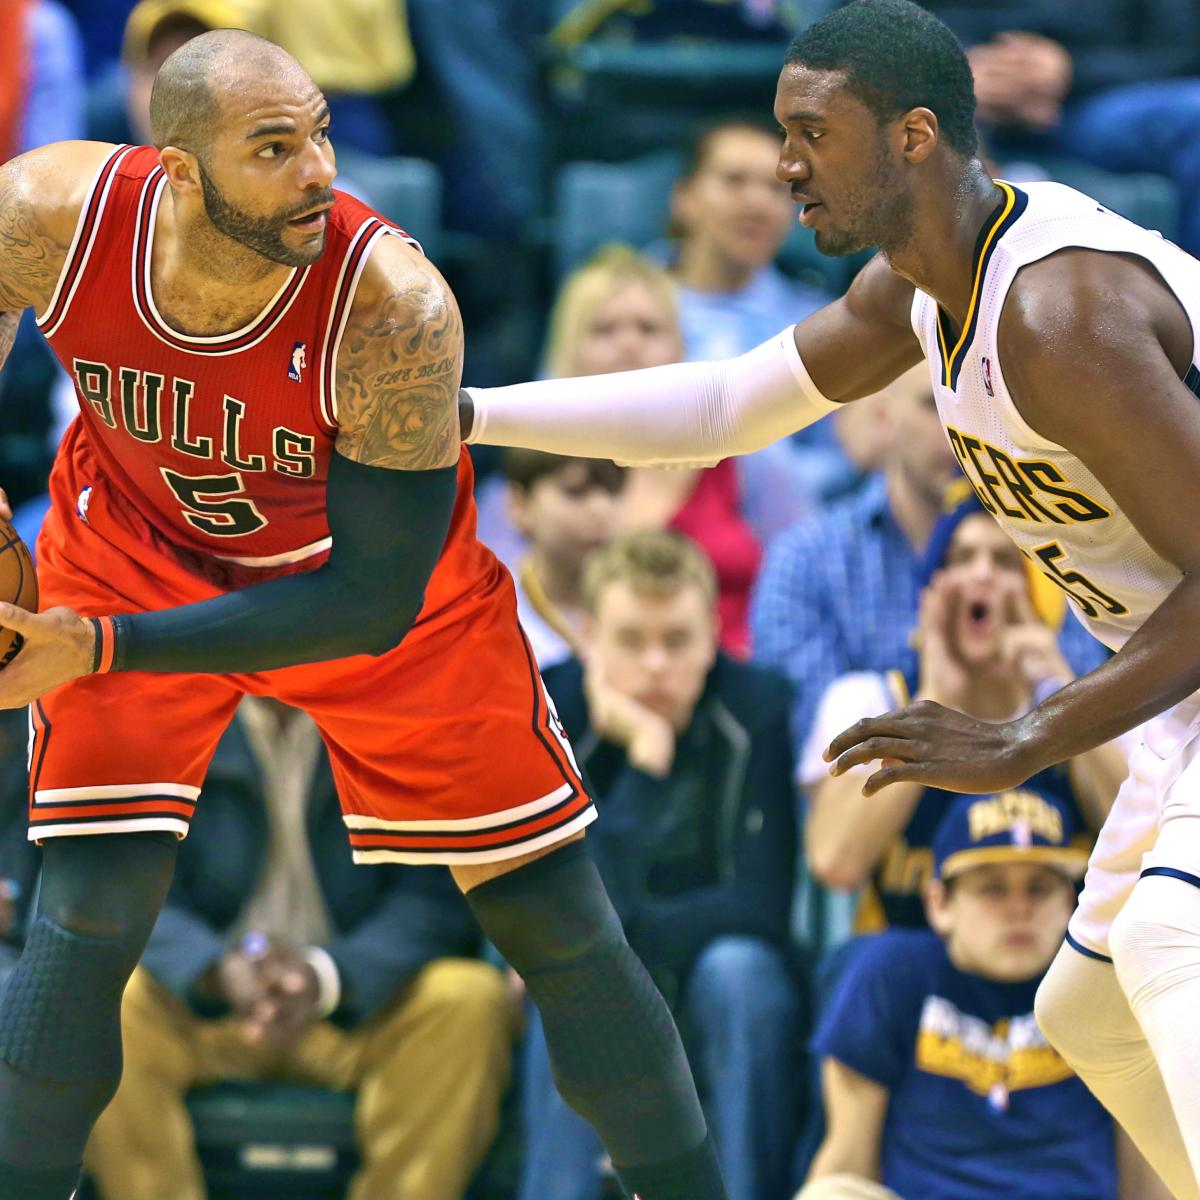 Warriors Vs Nets Full Game Highlights: Chicago Bulls Vs. Indiana Pacers: Live Score, Results And